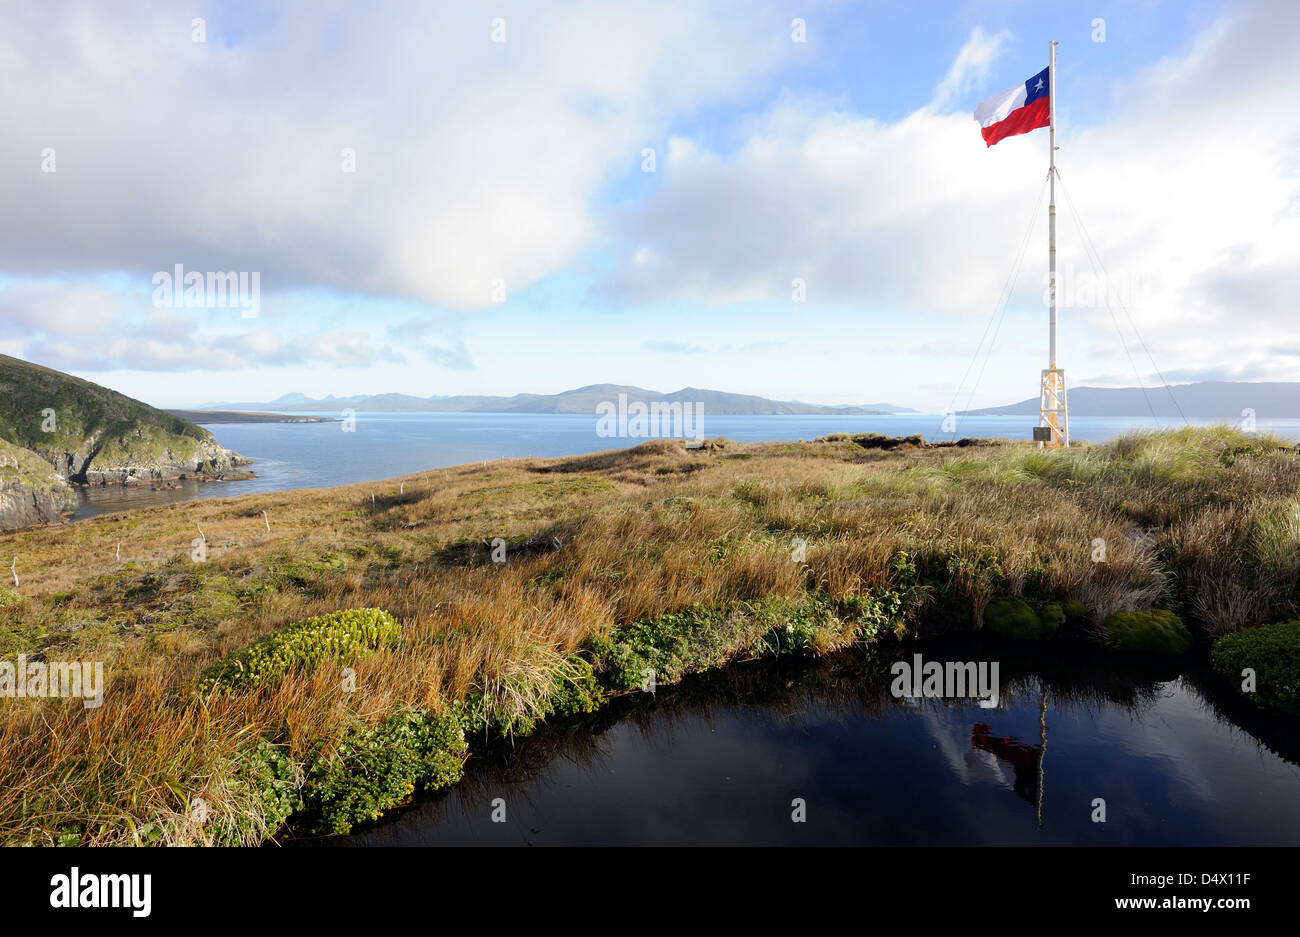 The national flag of Chile, La Estrella Solitaria, (The Lone Star) flies over the Cape Horn National Park. Cabo - Stock Image